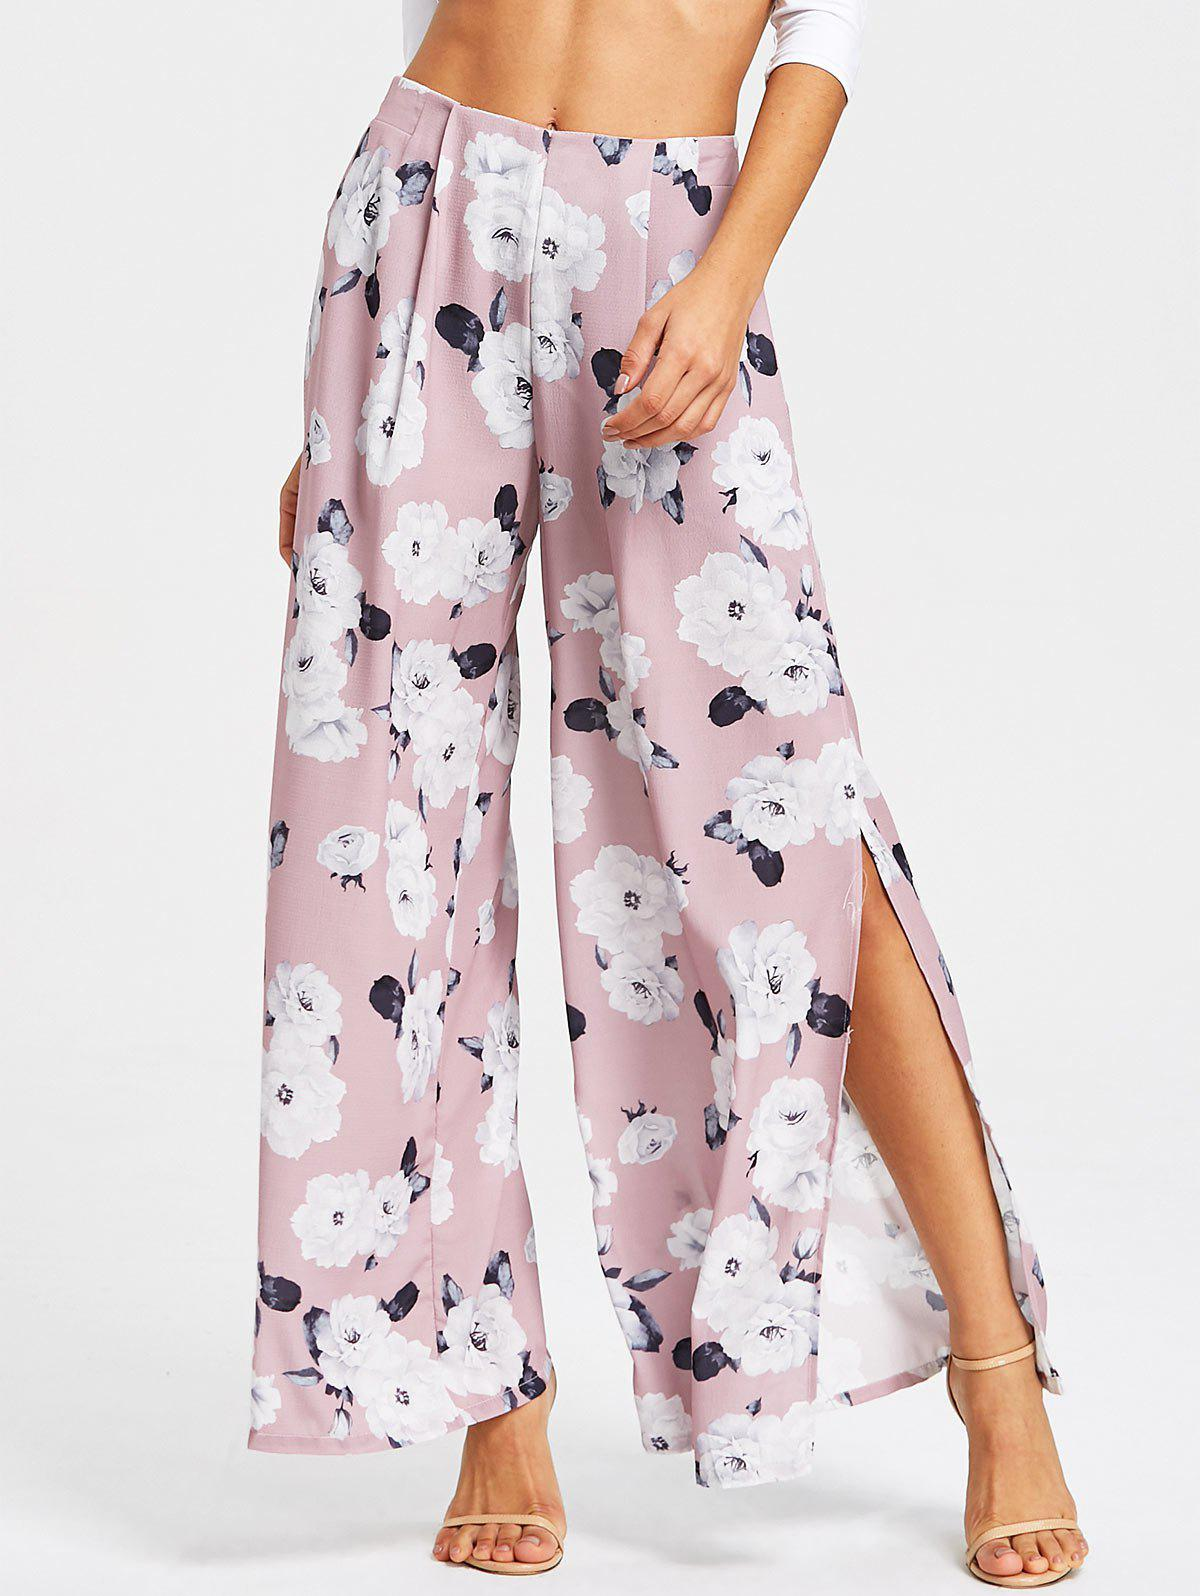 High Slit Floral Print Wide Leg Pants - PALE PINKISH GREY 2XL